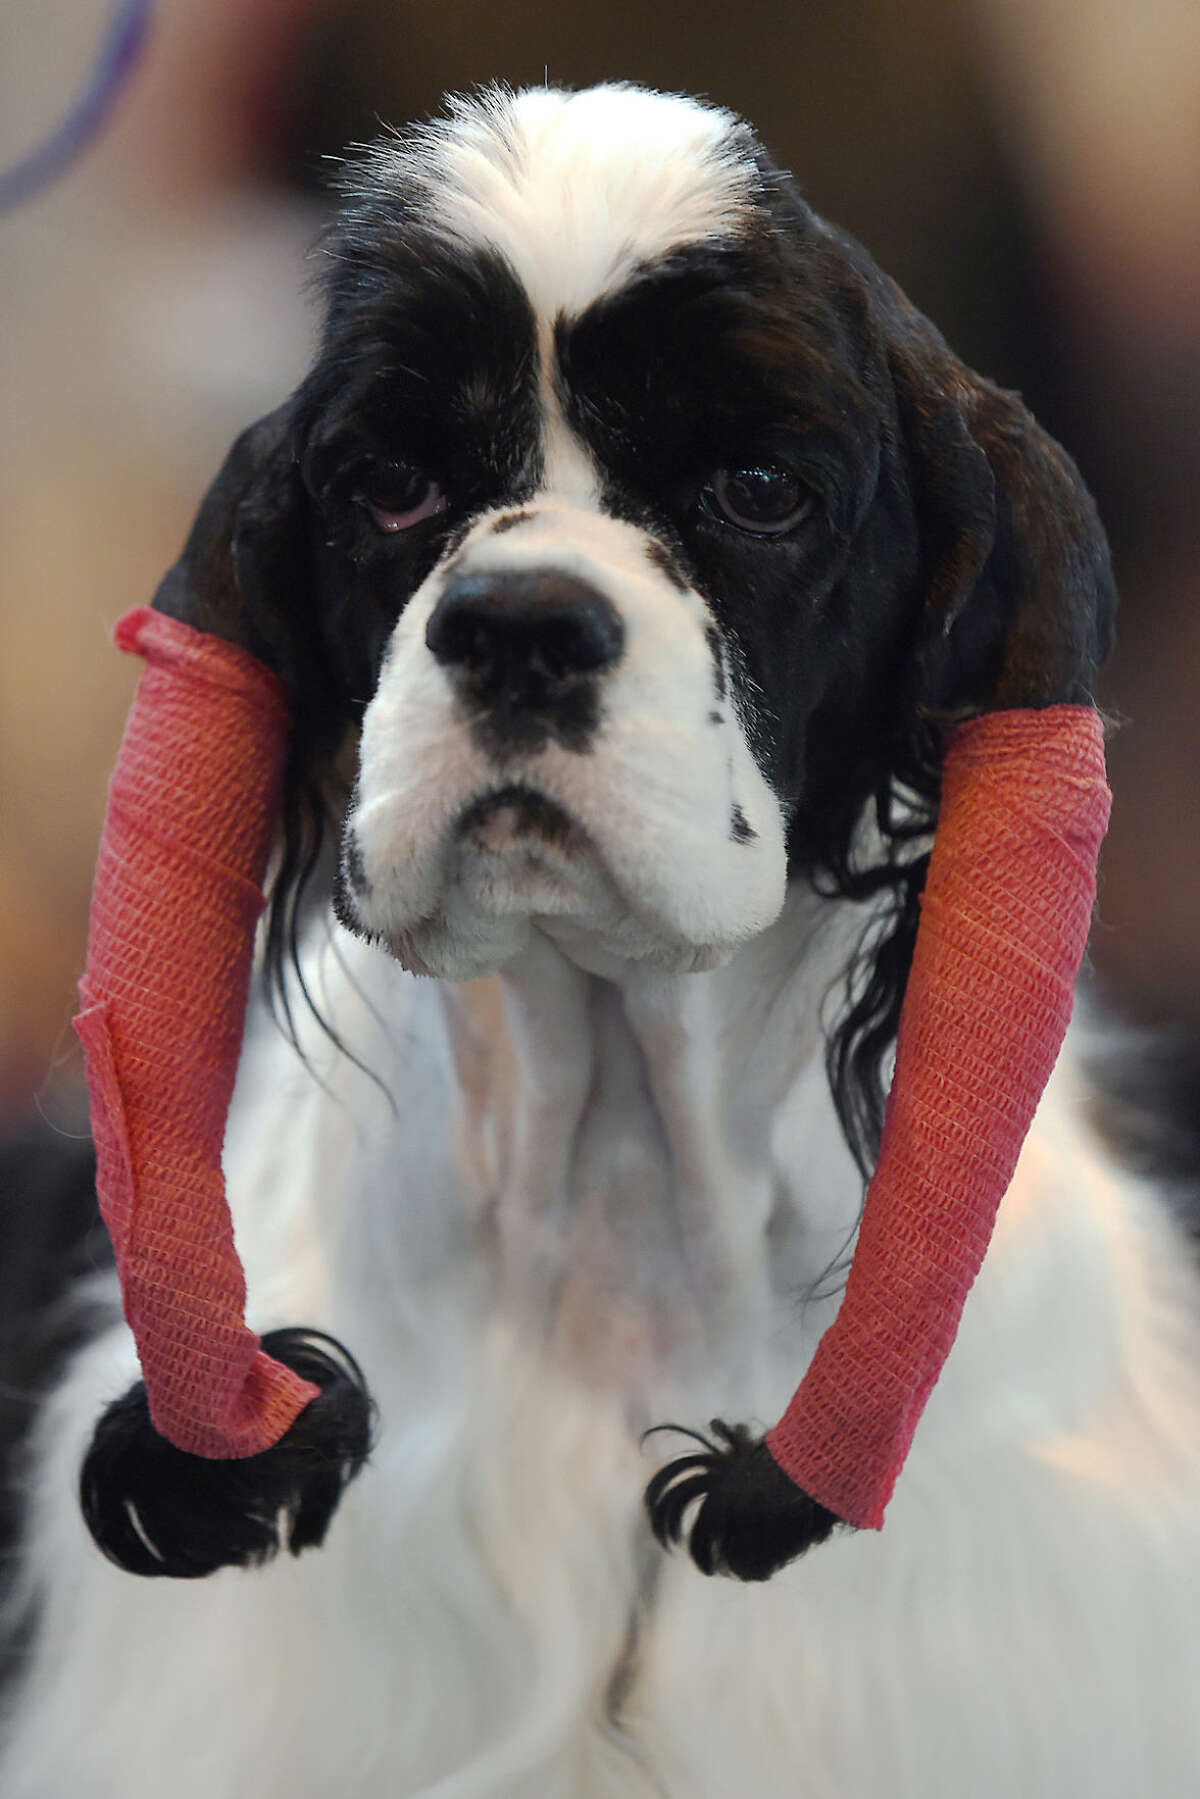 An American Cocker Spaniel named Eva prepares for the competition, during day two of Crufts 2016, at the NEC, Birmingham, England, Friday March 11, 2016. Crufts one of the most prestigious dog show in the world concludes Sunday with the awarding of the supreme champion. (Joe Giddens/PA via AP) UNITED KINGDOM OUT NO SALES NO ARCHIVE